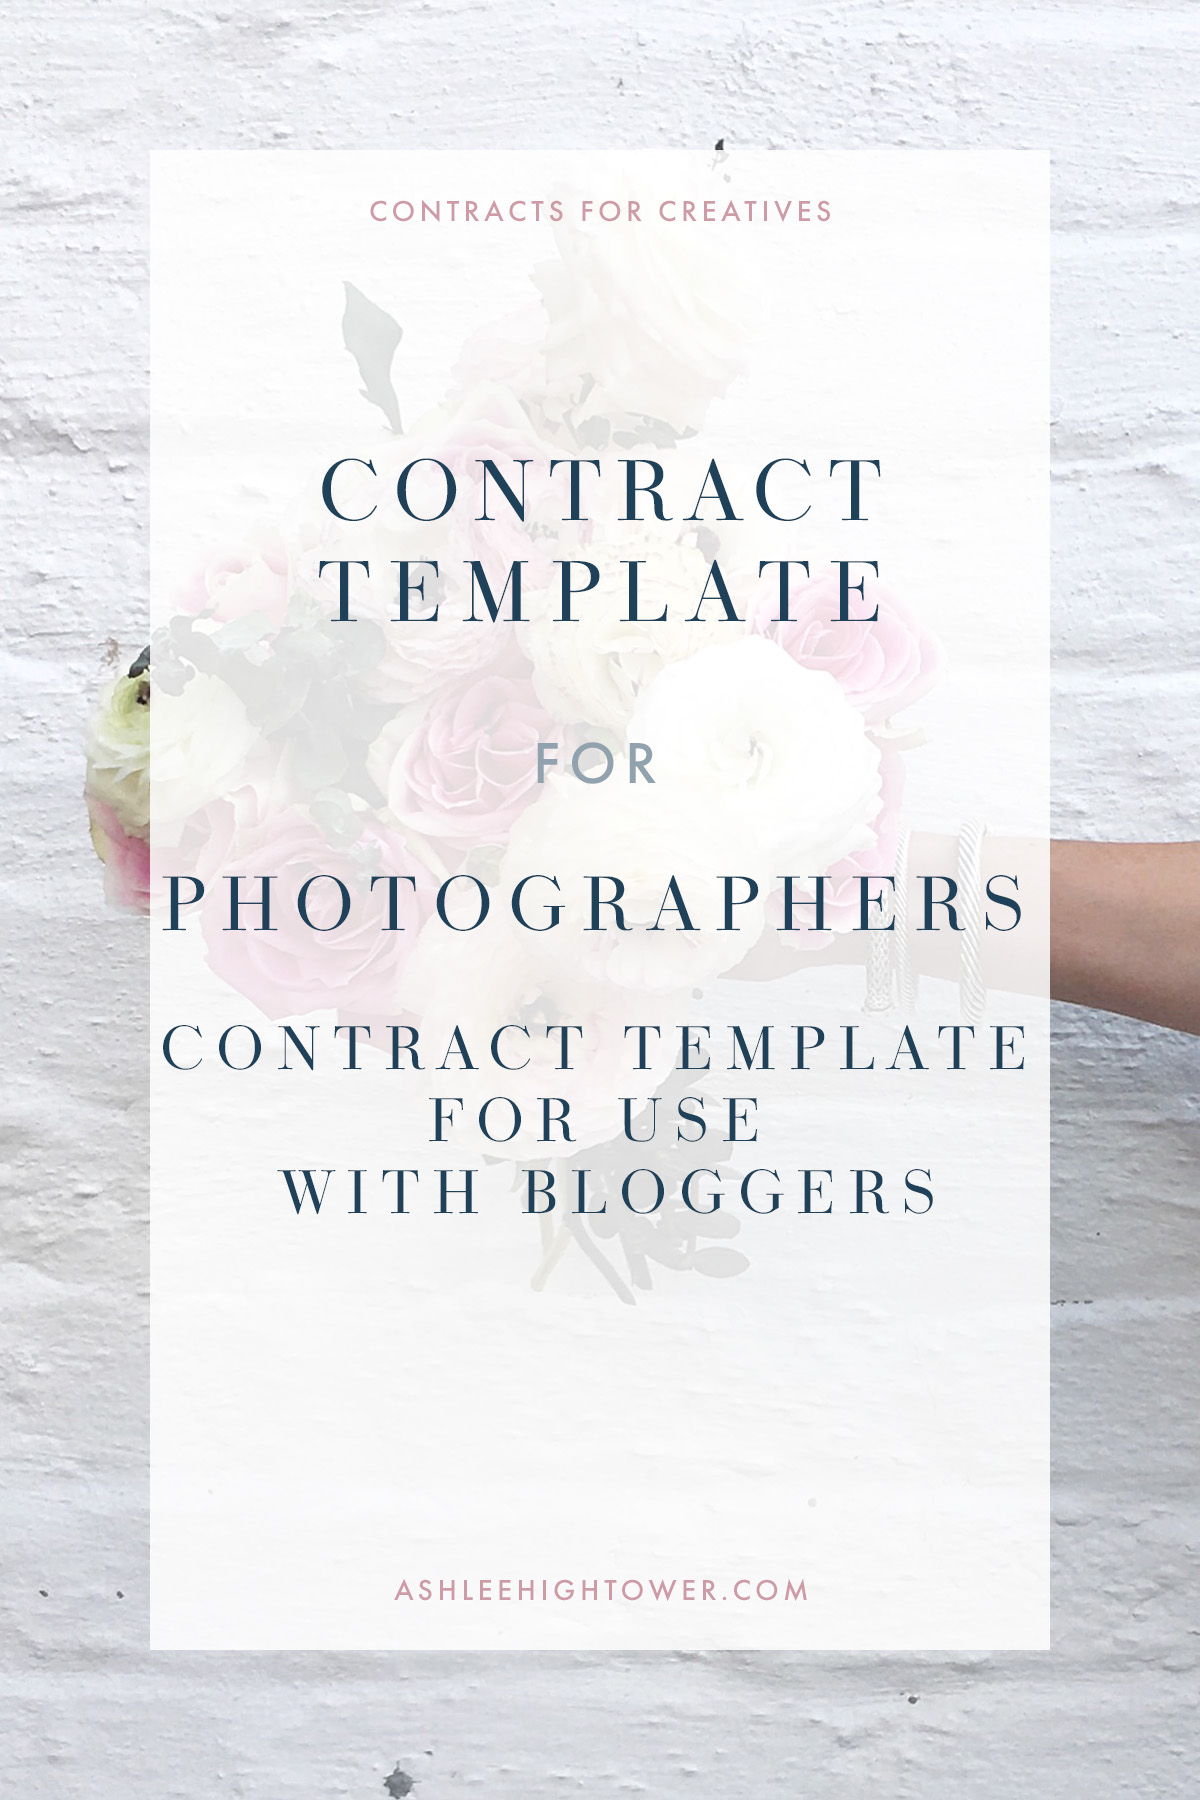 Contracts for Creatives | Photographer_Contract_Template_for_Use_with_Bloggers | | Photographer Contracts | Ashlee Hightower